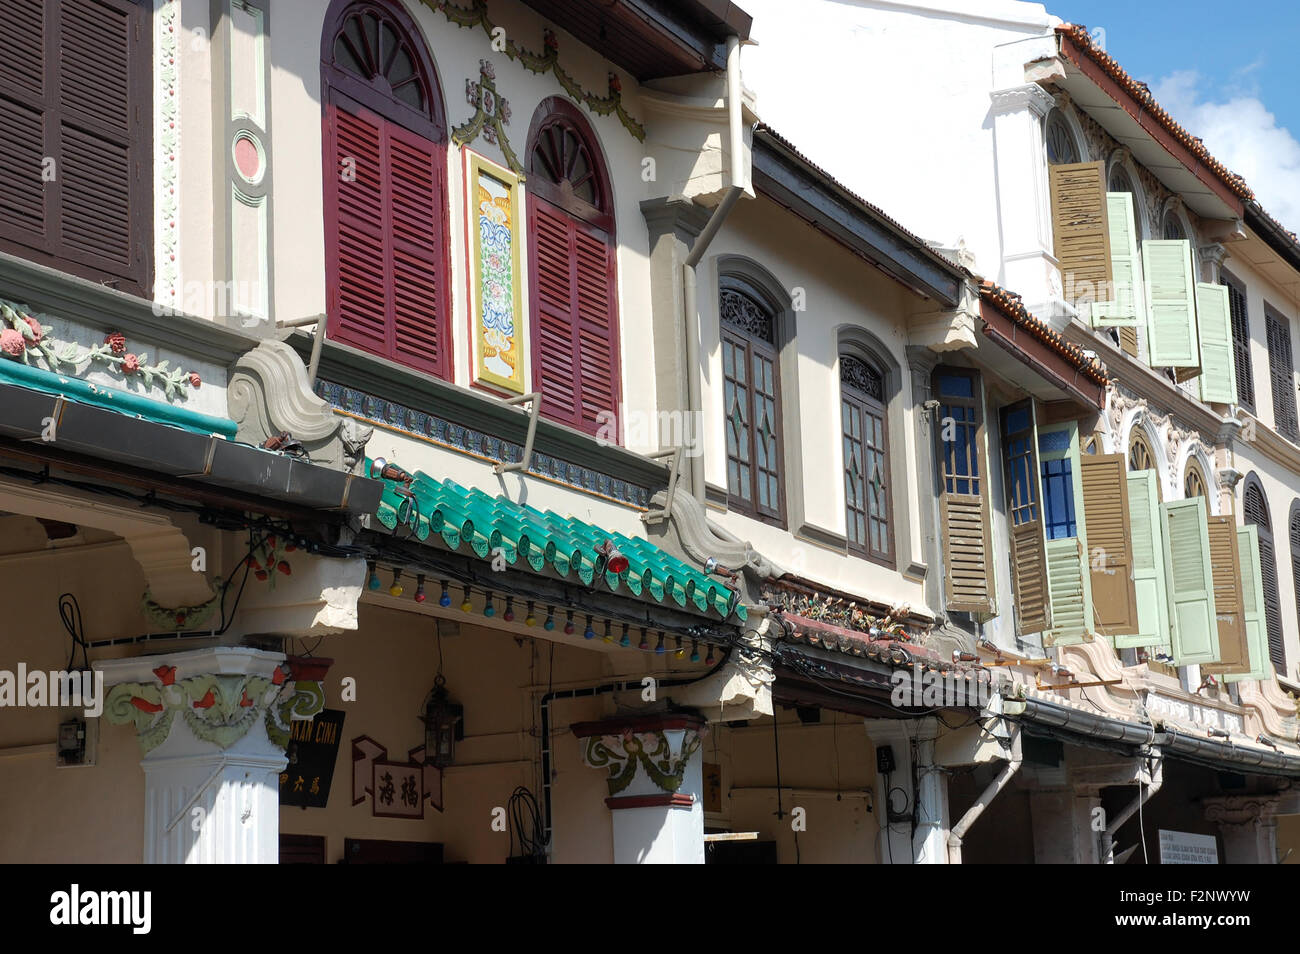 Shophouses along Heeren Street in the city of Malacca, Malaysia. - Stock Image